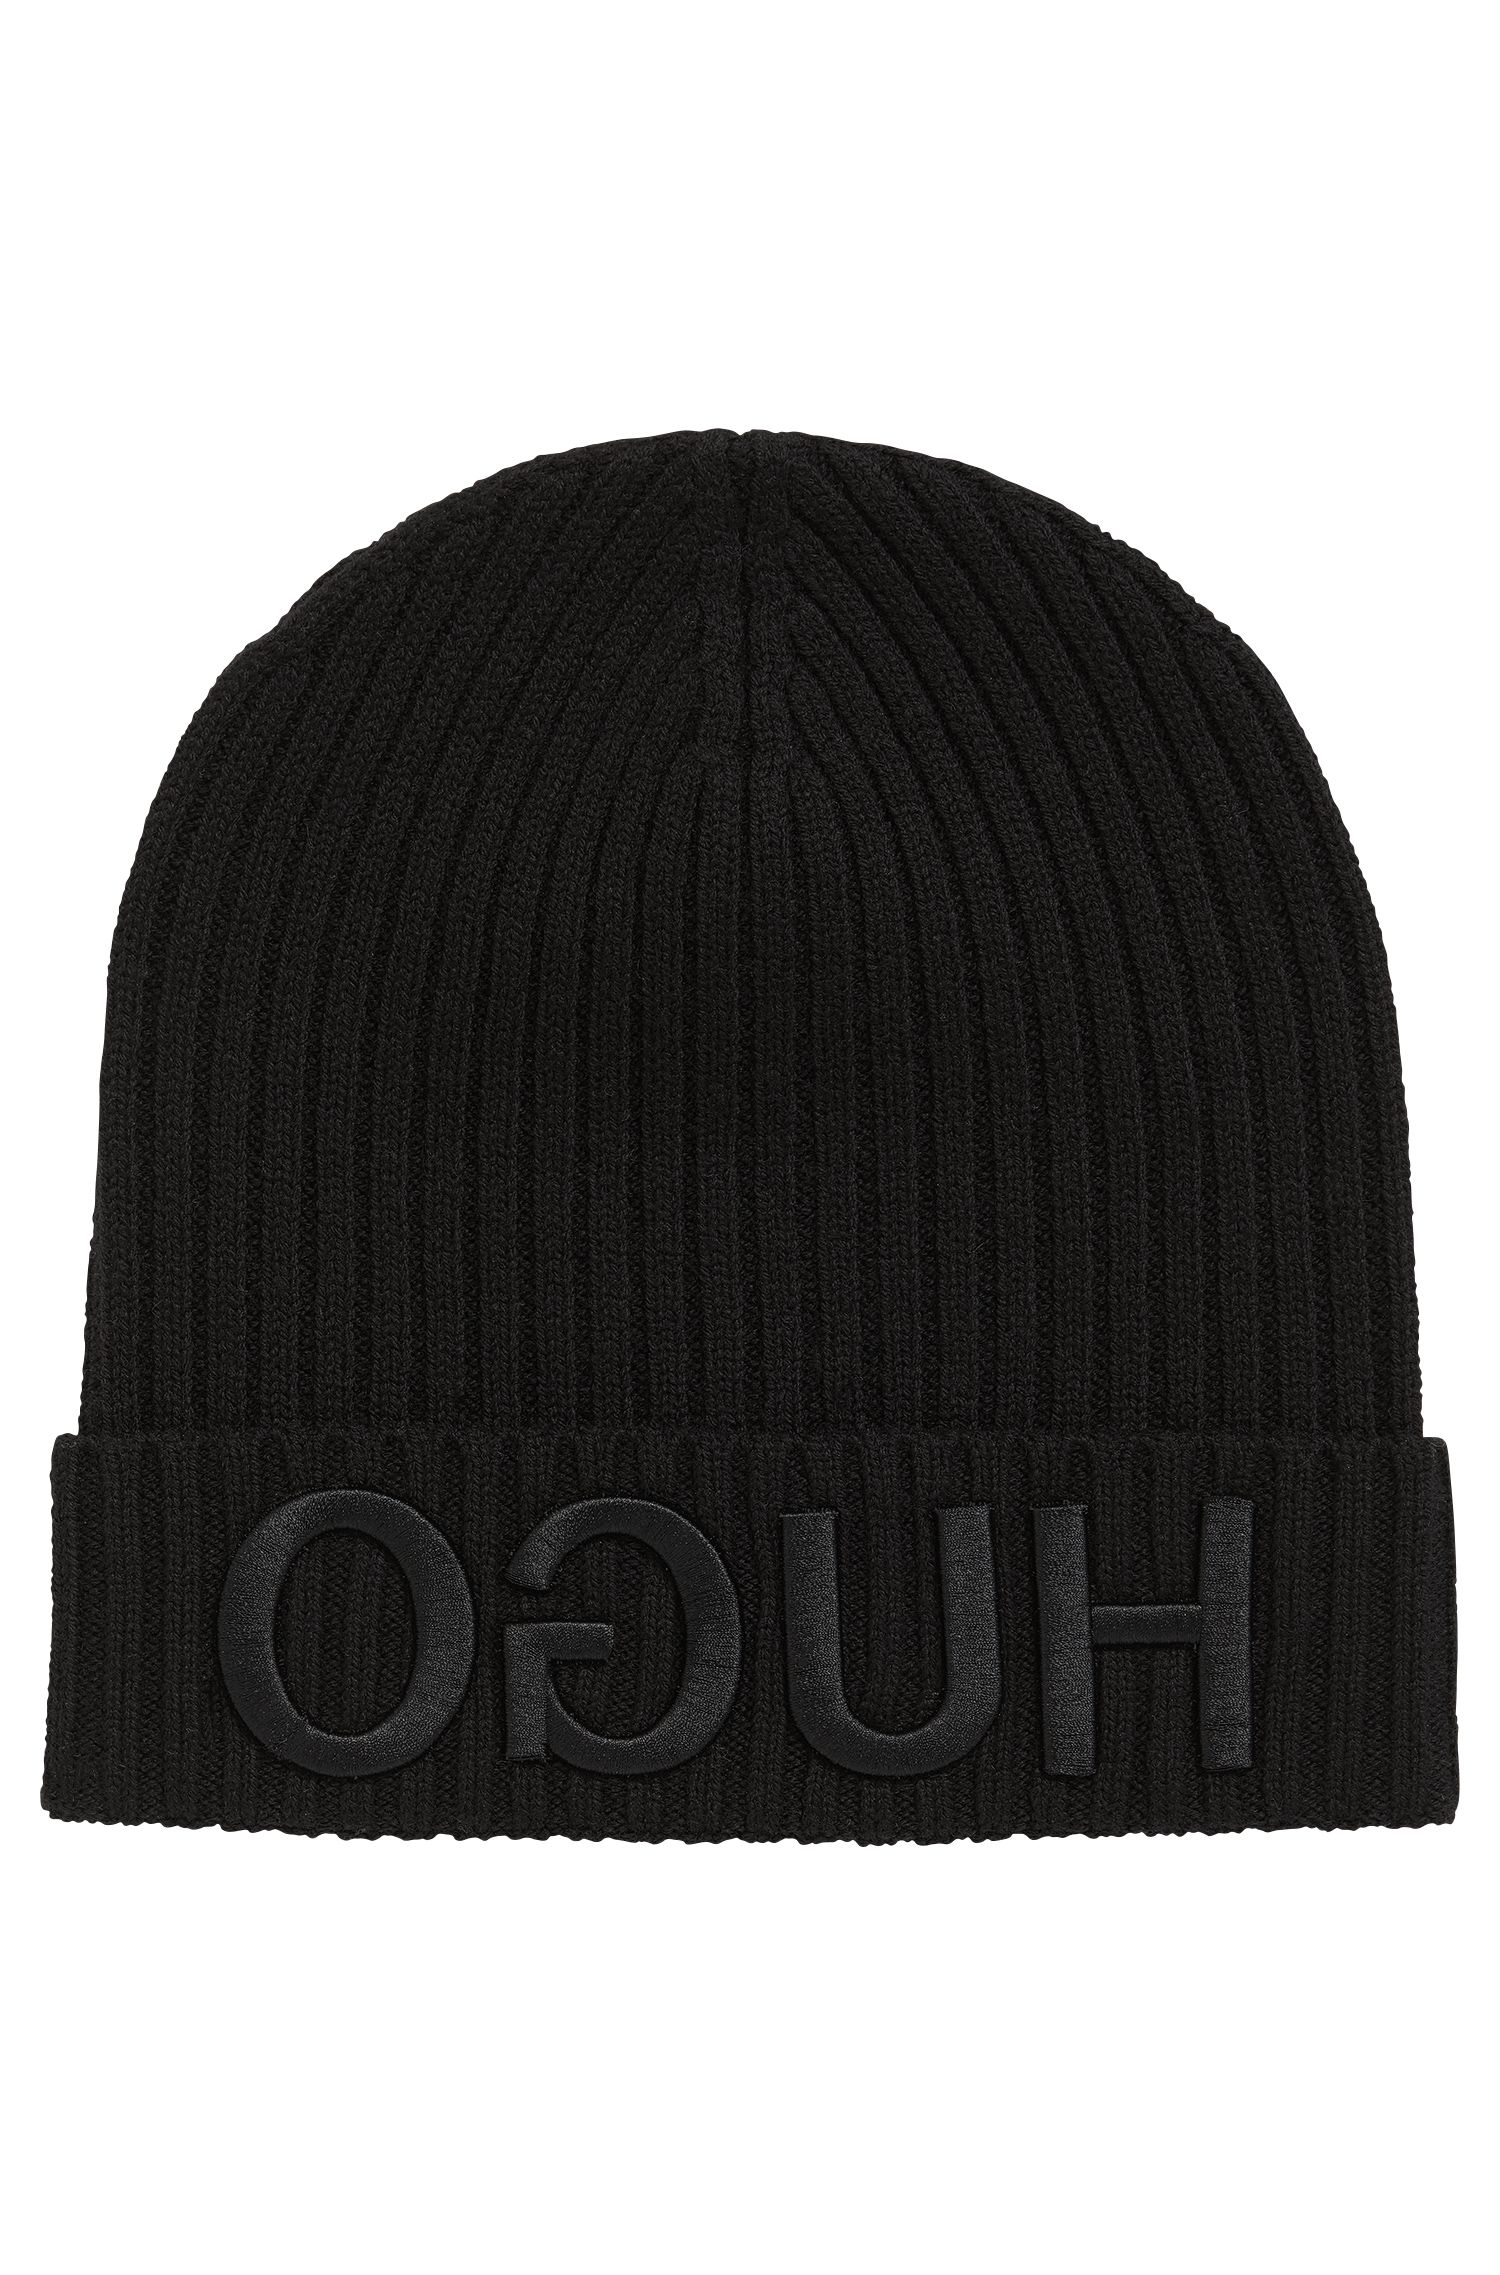 Logo-embroidered beanie hat in knitted wool